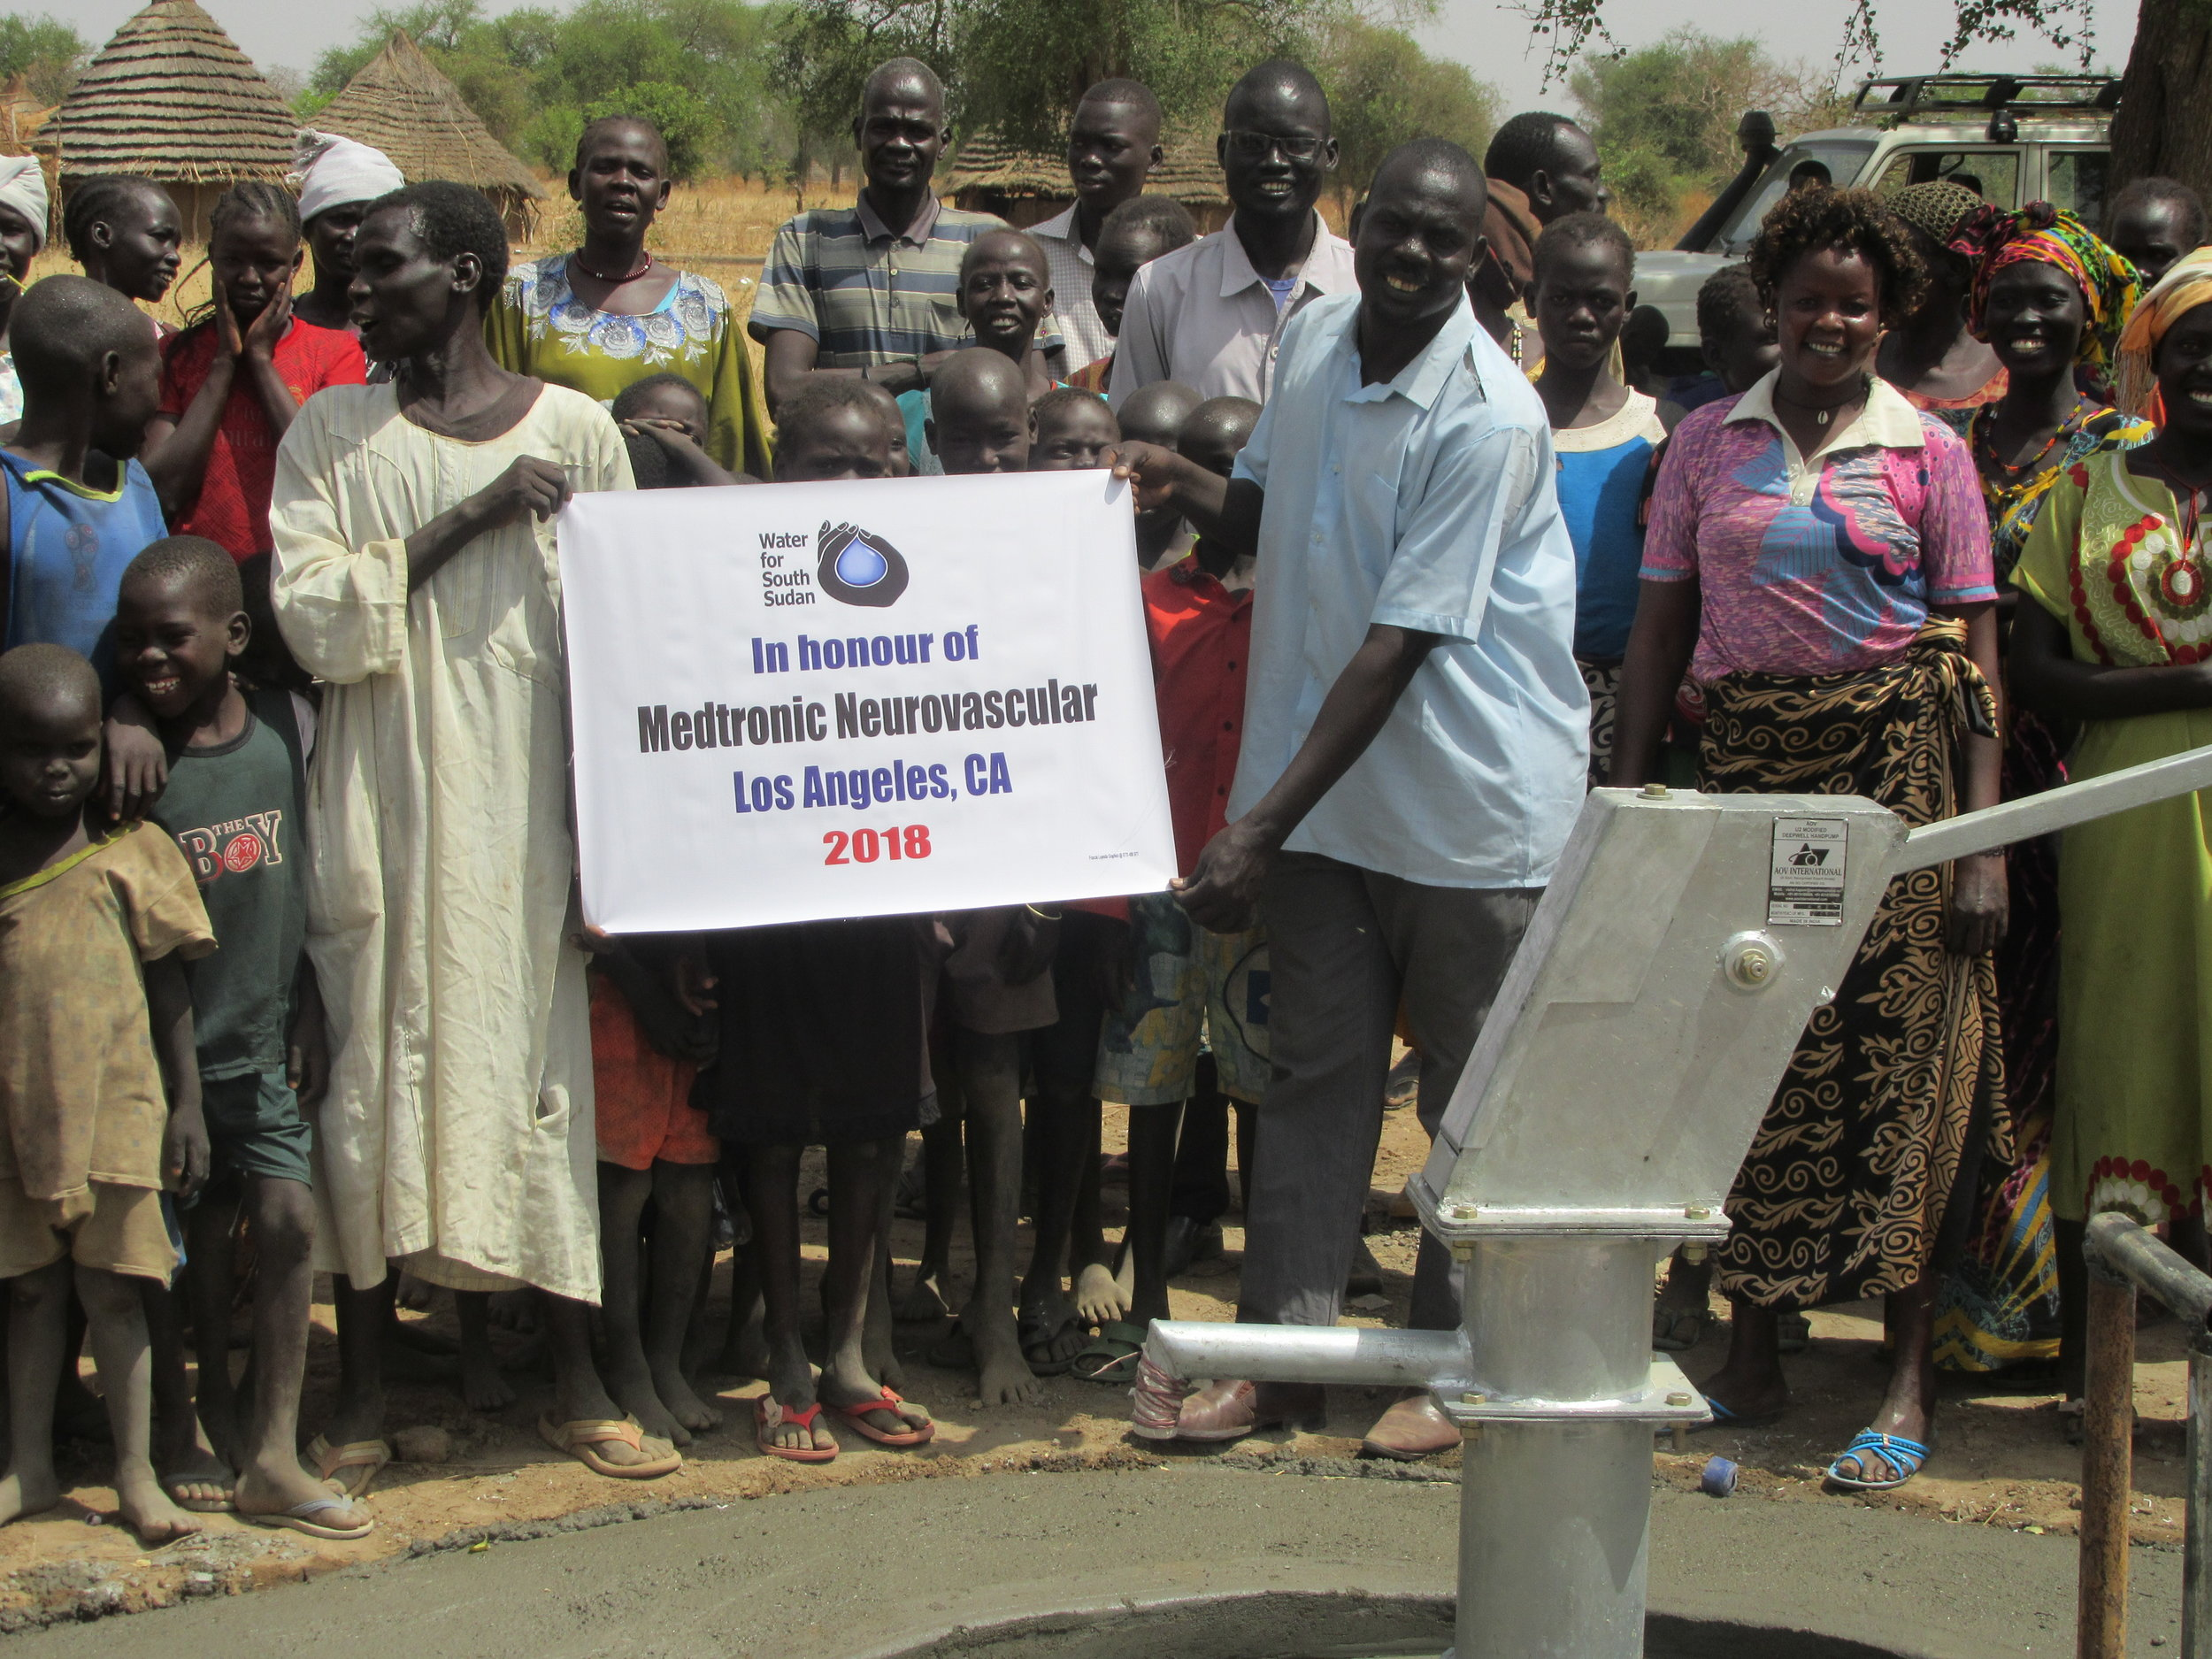 Villagers in Parot Aker village in South Sudan where Medtronic Neurovascular's first well was drilled this year.